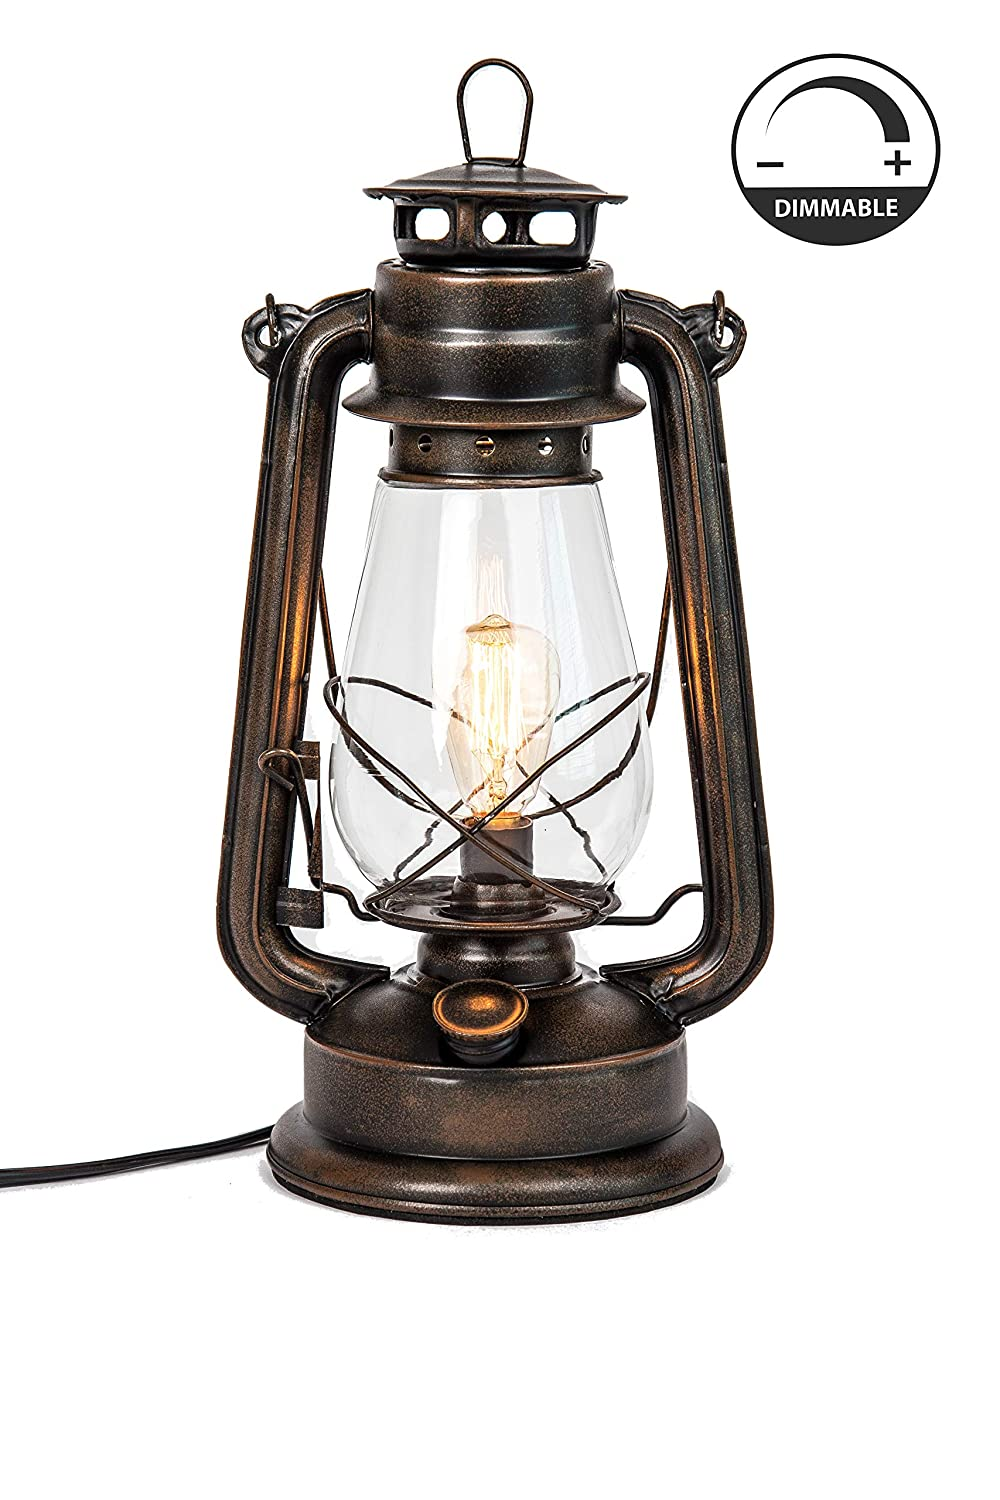 Dimmable Electric Lantern lamp with Edison Bulb Included Rustic Rust Finish Muskoka Lifestyle Products MUS113